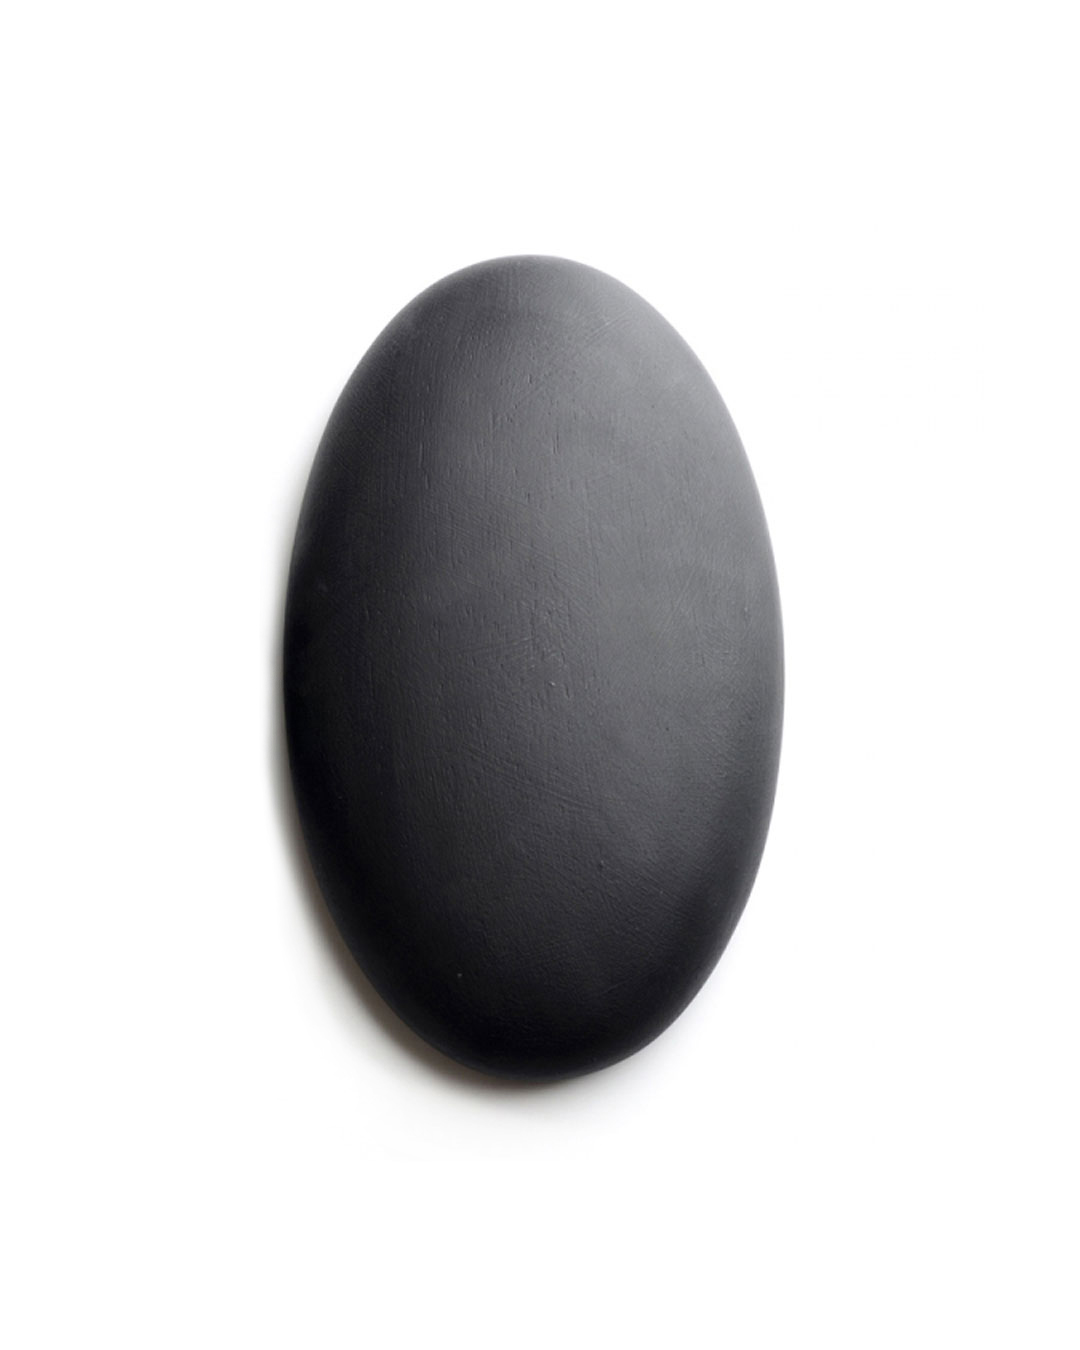 David Huycke, Black Oval Mercury, 2012, object; wenge, paint, 158 x 263 x 48 mm, €1100